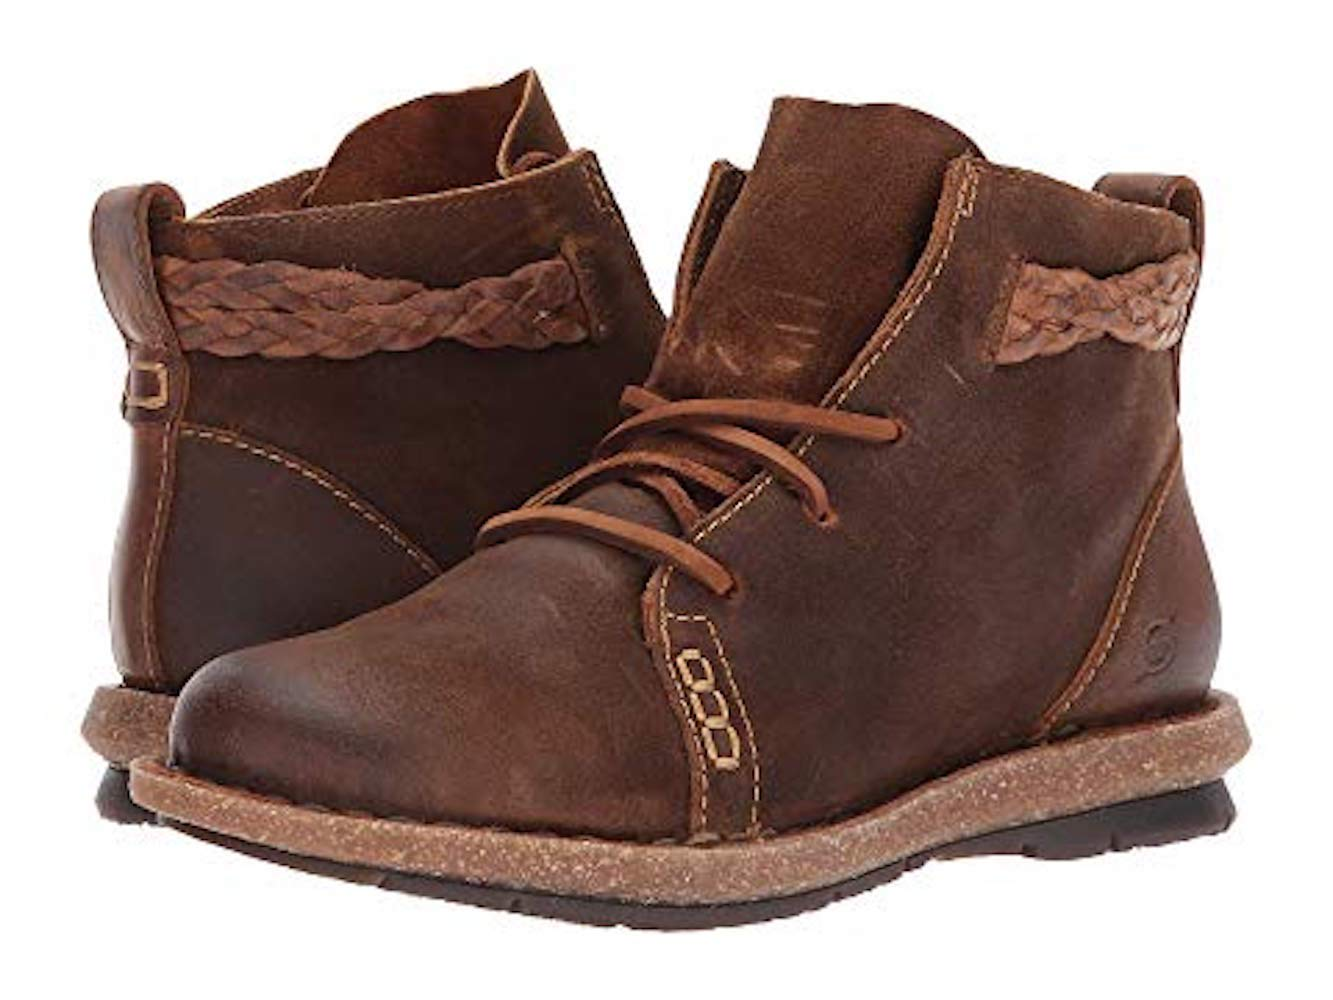 BORN Temple Women's Boot 9.5 Ranking TOP5 Clearance SALE Limited time B M US Rust